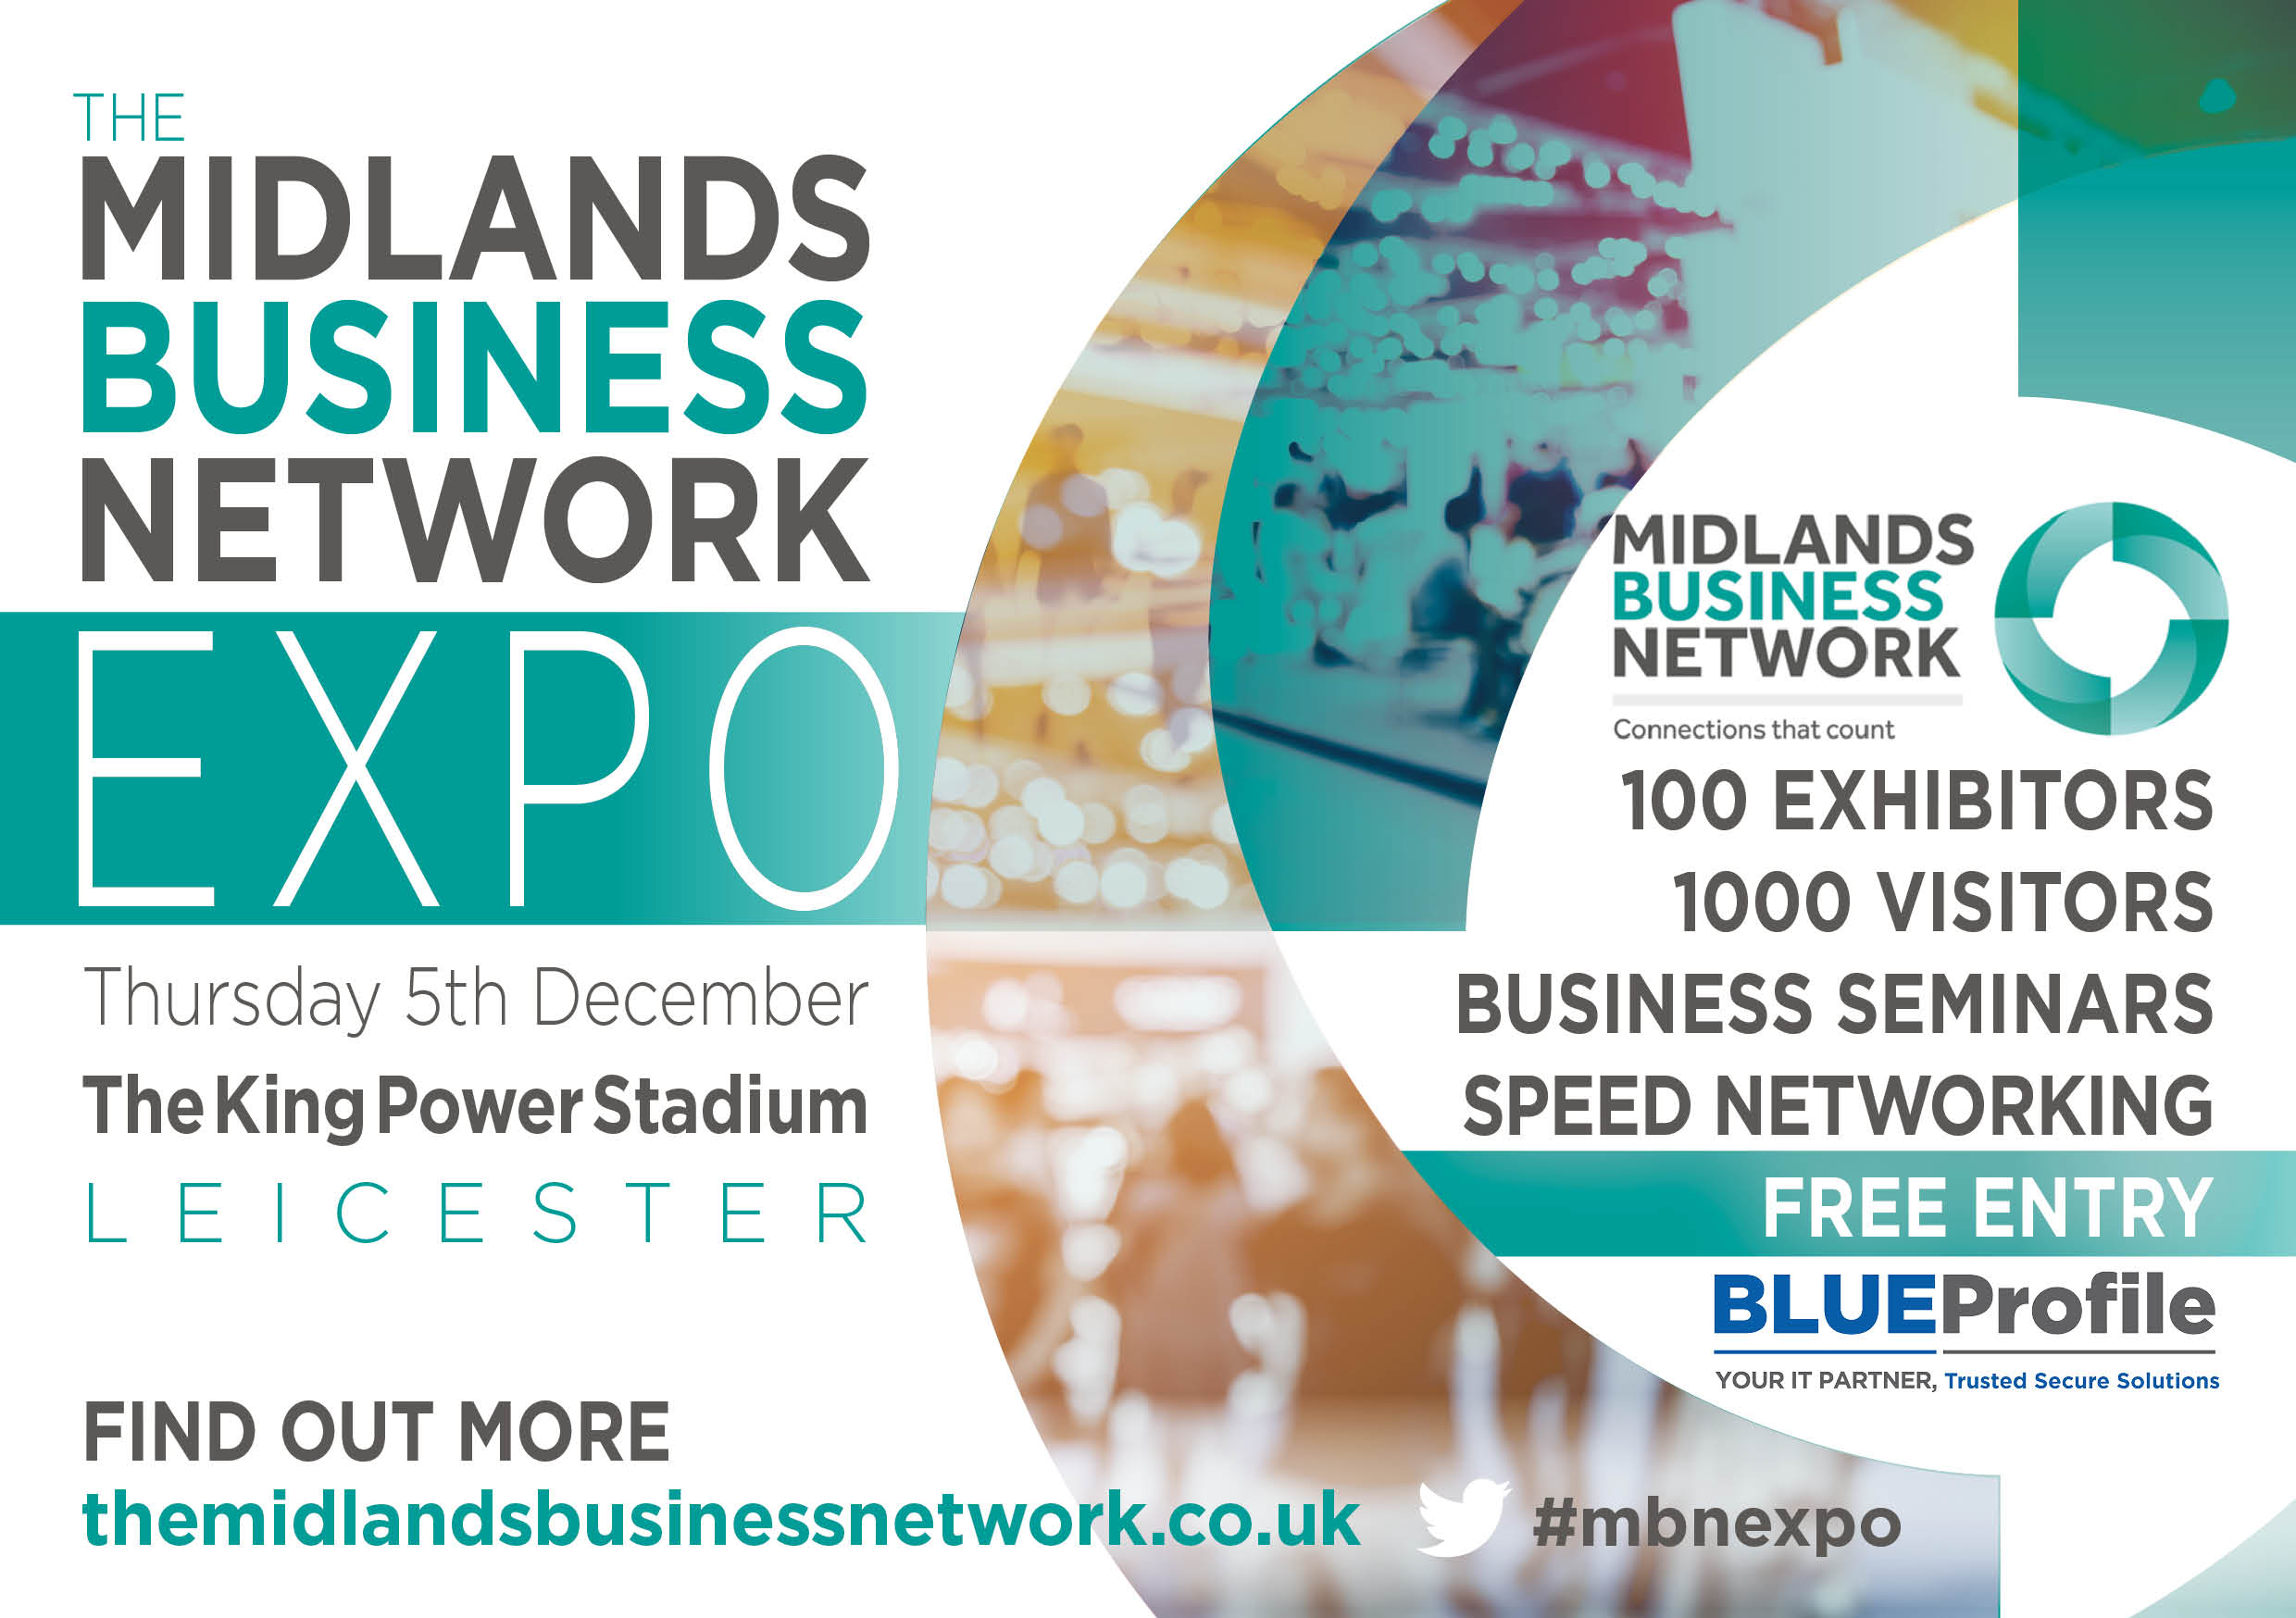 MIDLANDS BUSINESS NETWORK EXPO, 5TH DECEMBER 2019